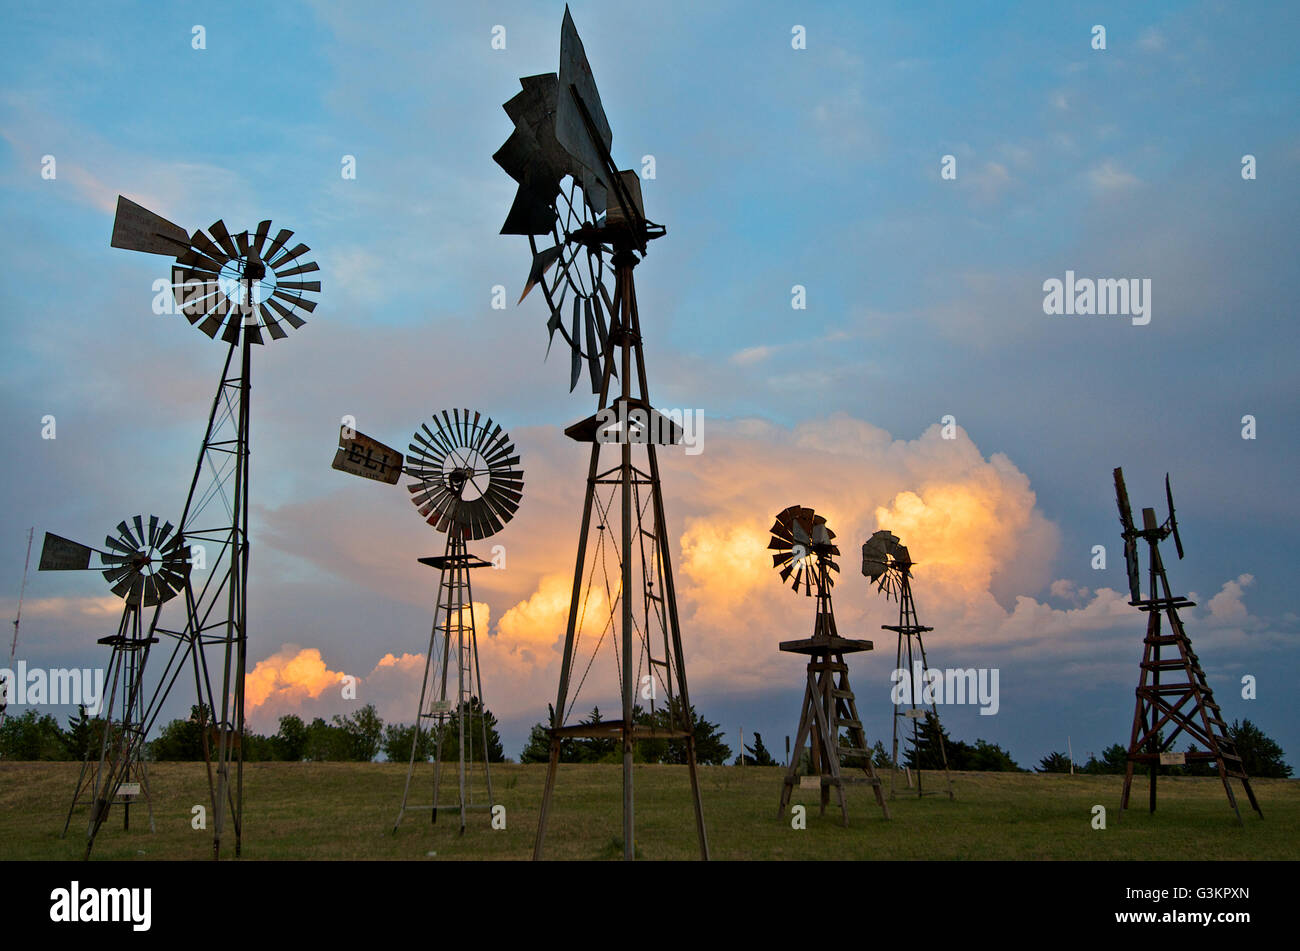 Storms behind a windmill park in Shattuck, Oklahoma, USA - Stock Image